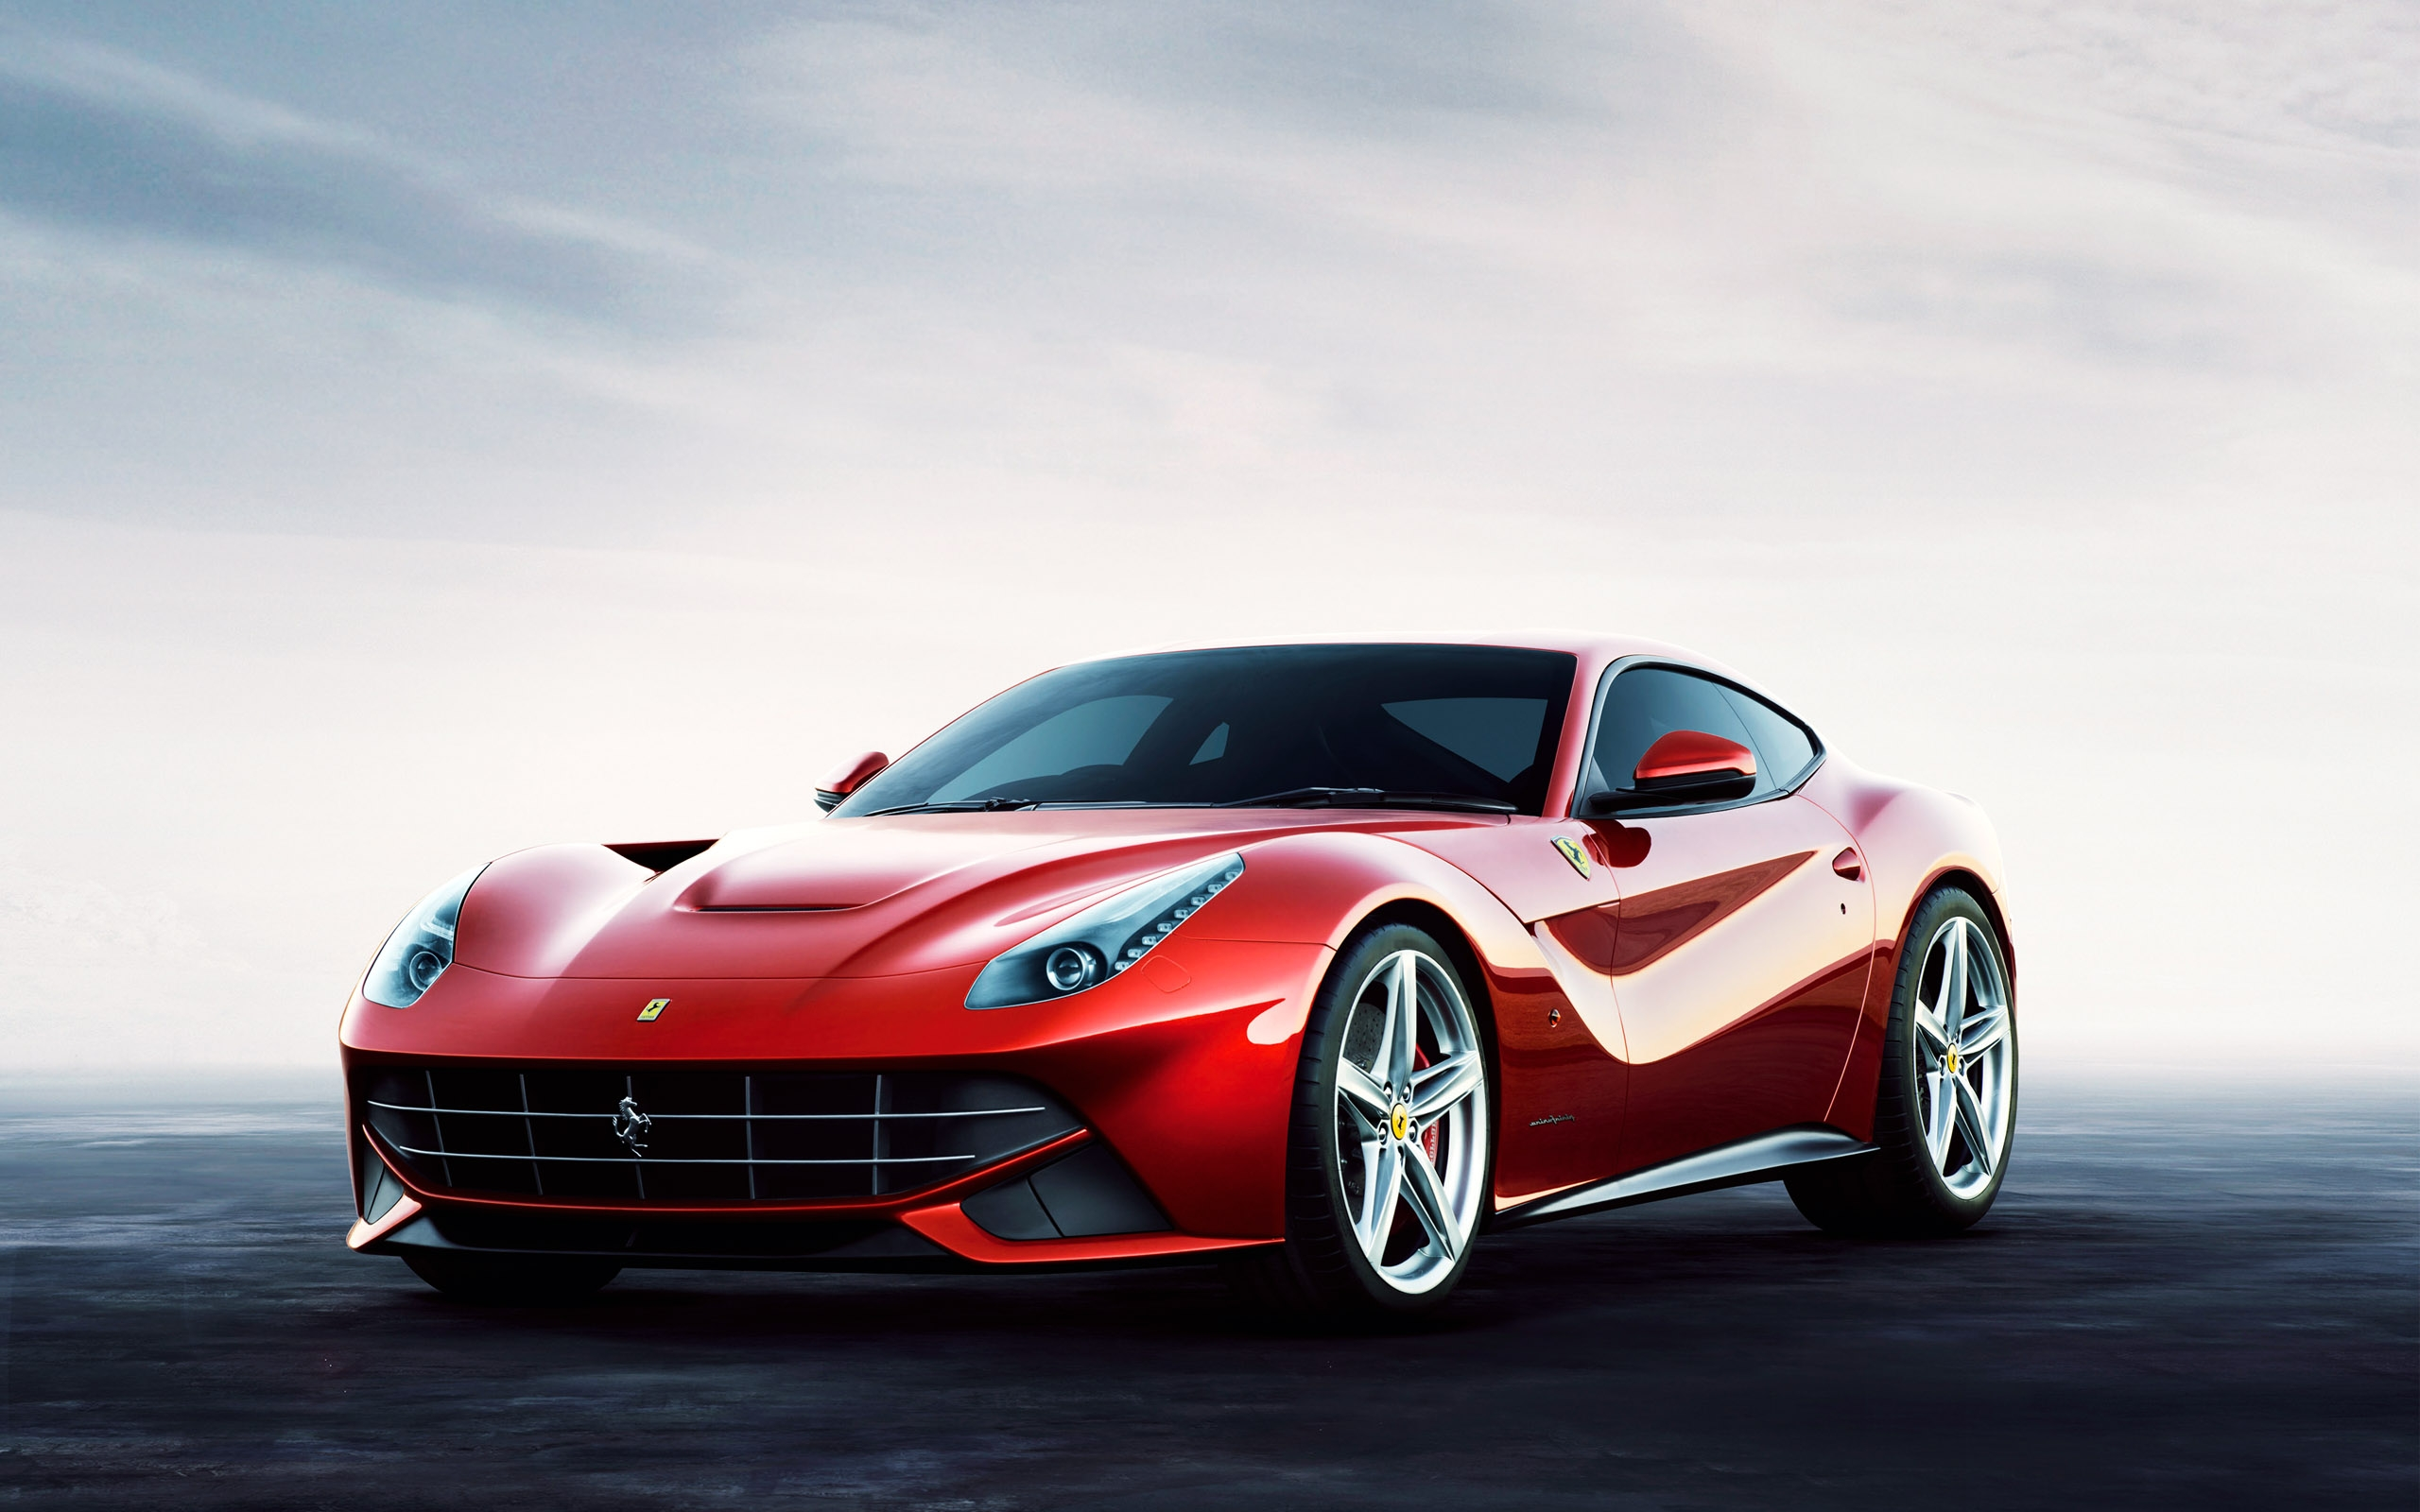 Pictures of ferrari f12 berlinetta